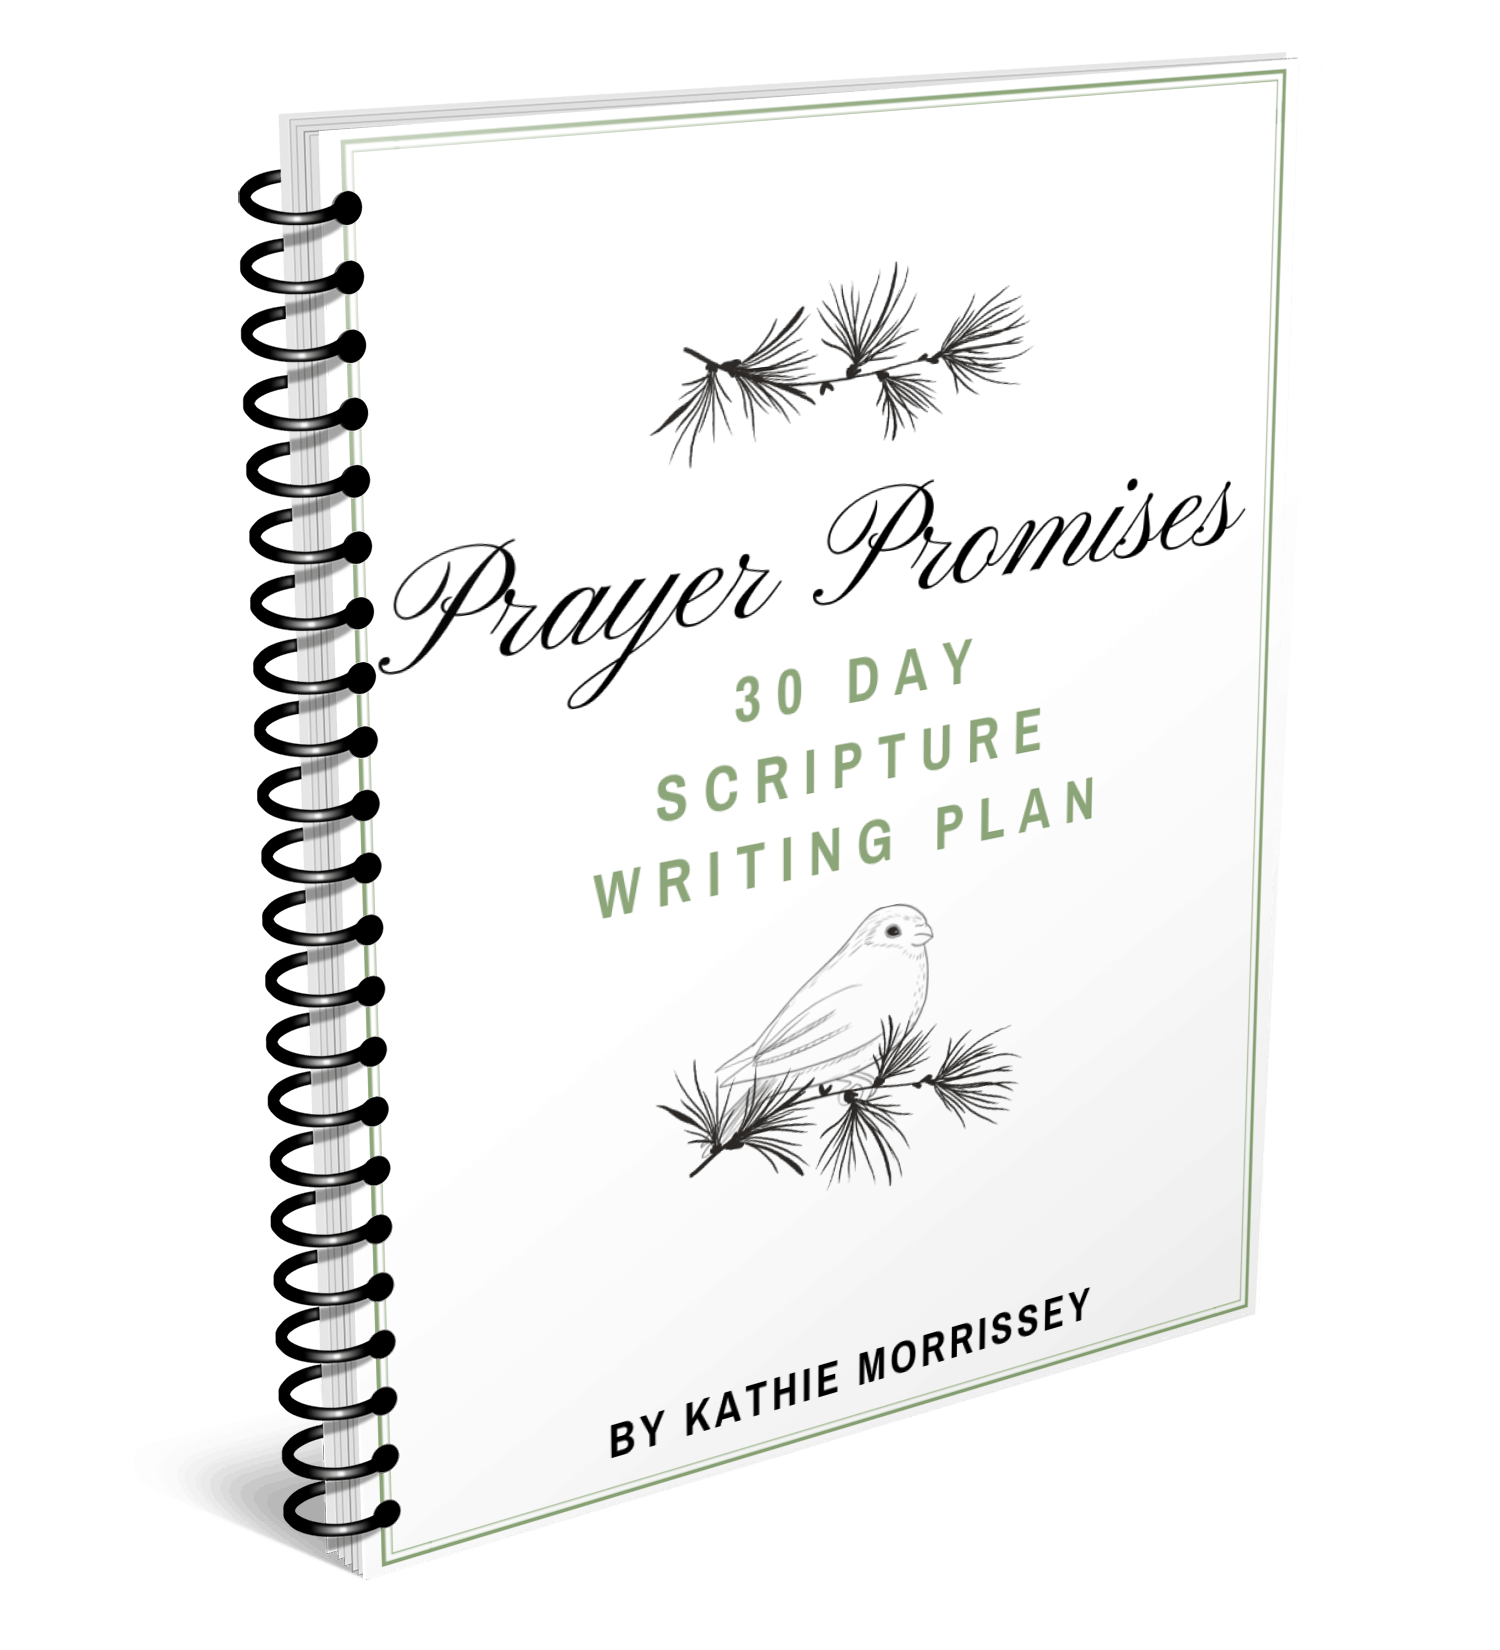 Prayer Promises Free 30 Day Scripture Writing Plan